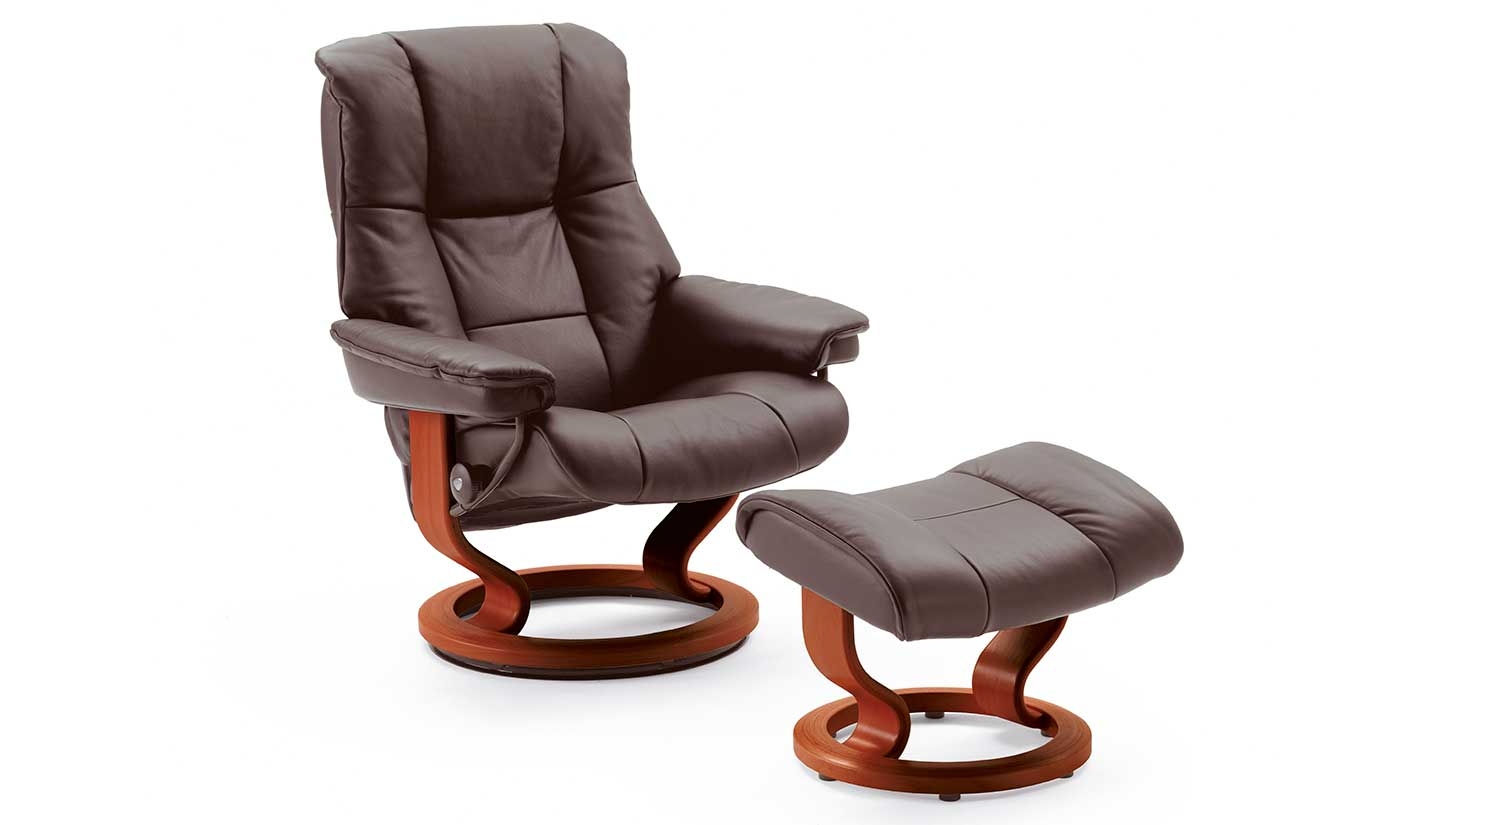 Stressless Outlet Circle Furniture Mayfair Recliner Stressless Ma Circle